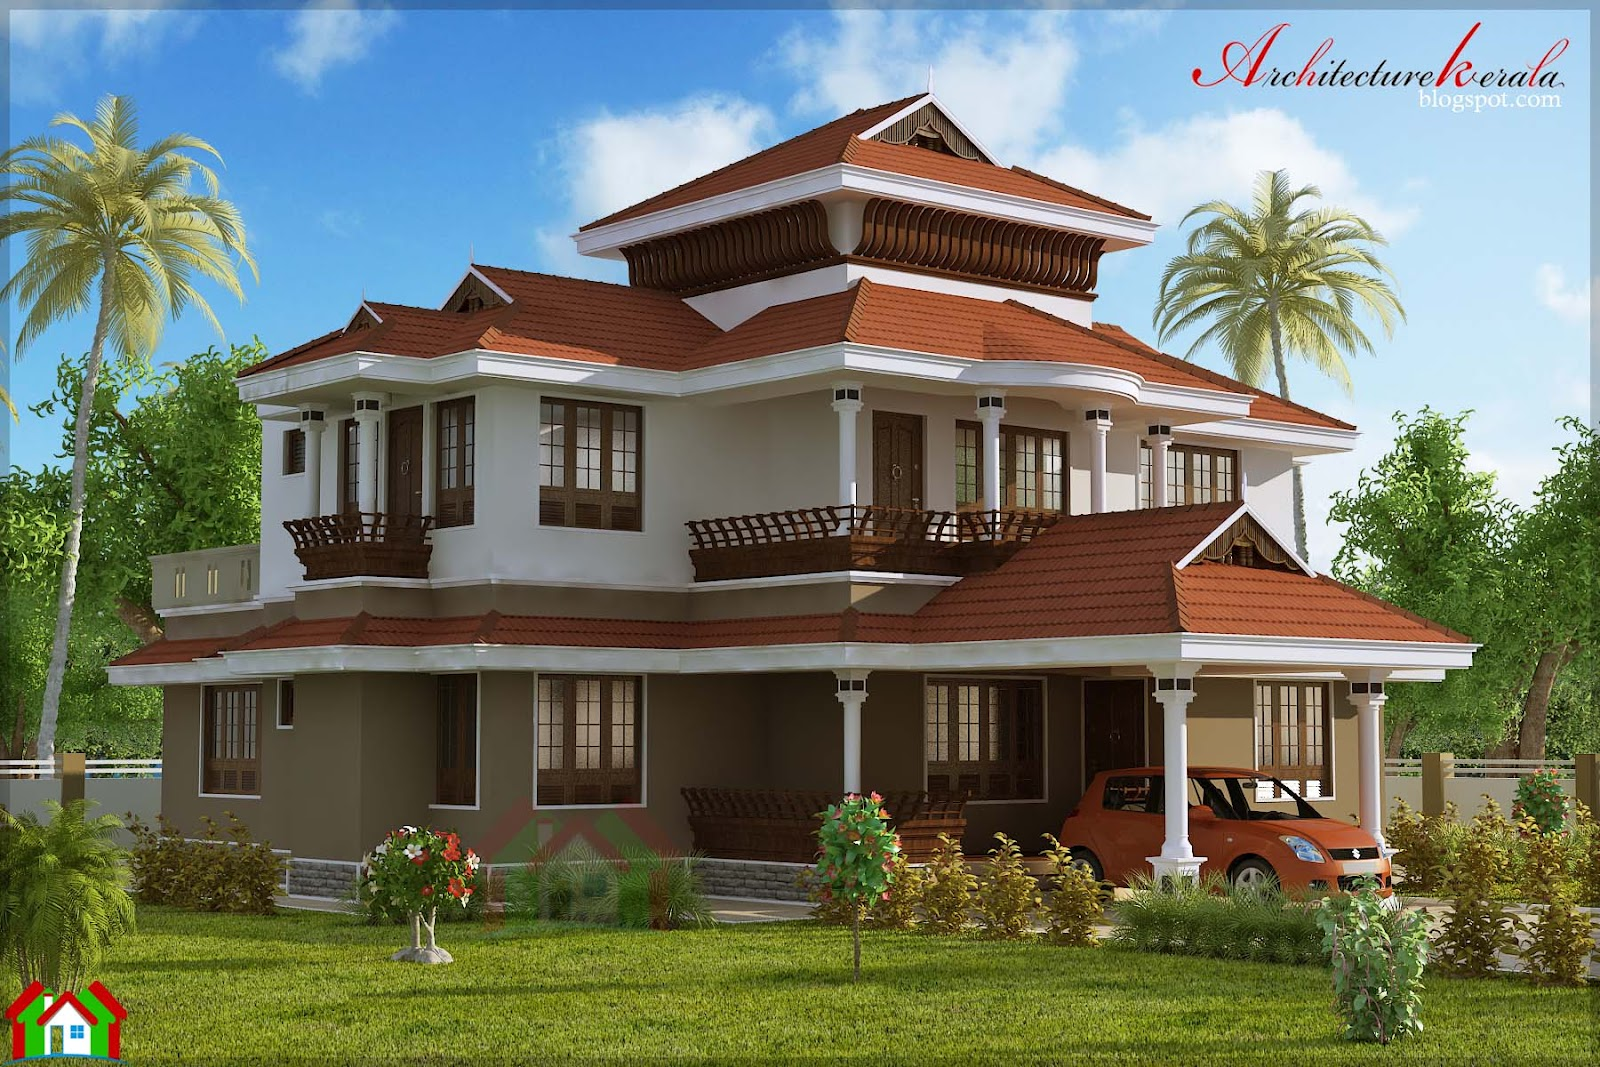 Architecture kerala 4 bed room traditional style house for Conventional house style